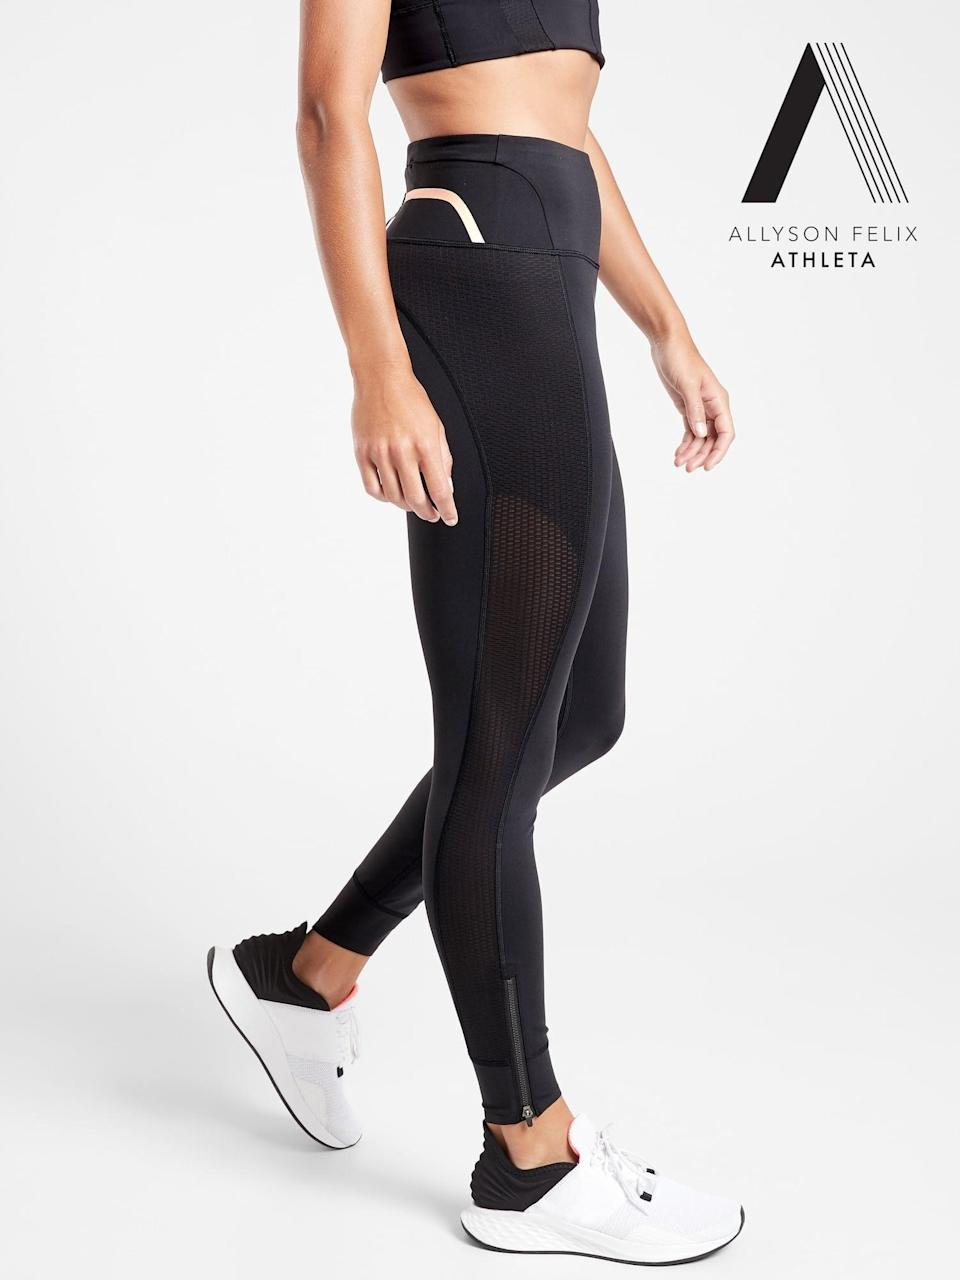 <p>This <span>Athleta Legend Mesh 7/8 Tight</span> ($109) is a collaboration with Olympic runner Allyson Felix, so you know these were made to move. The tights are made with supersonic fabric, which may not give you Felix's Olympic stride but will definitely help you move with ease and precision.</p>